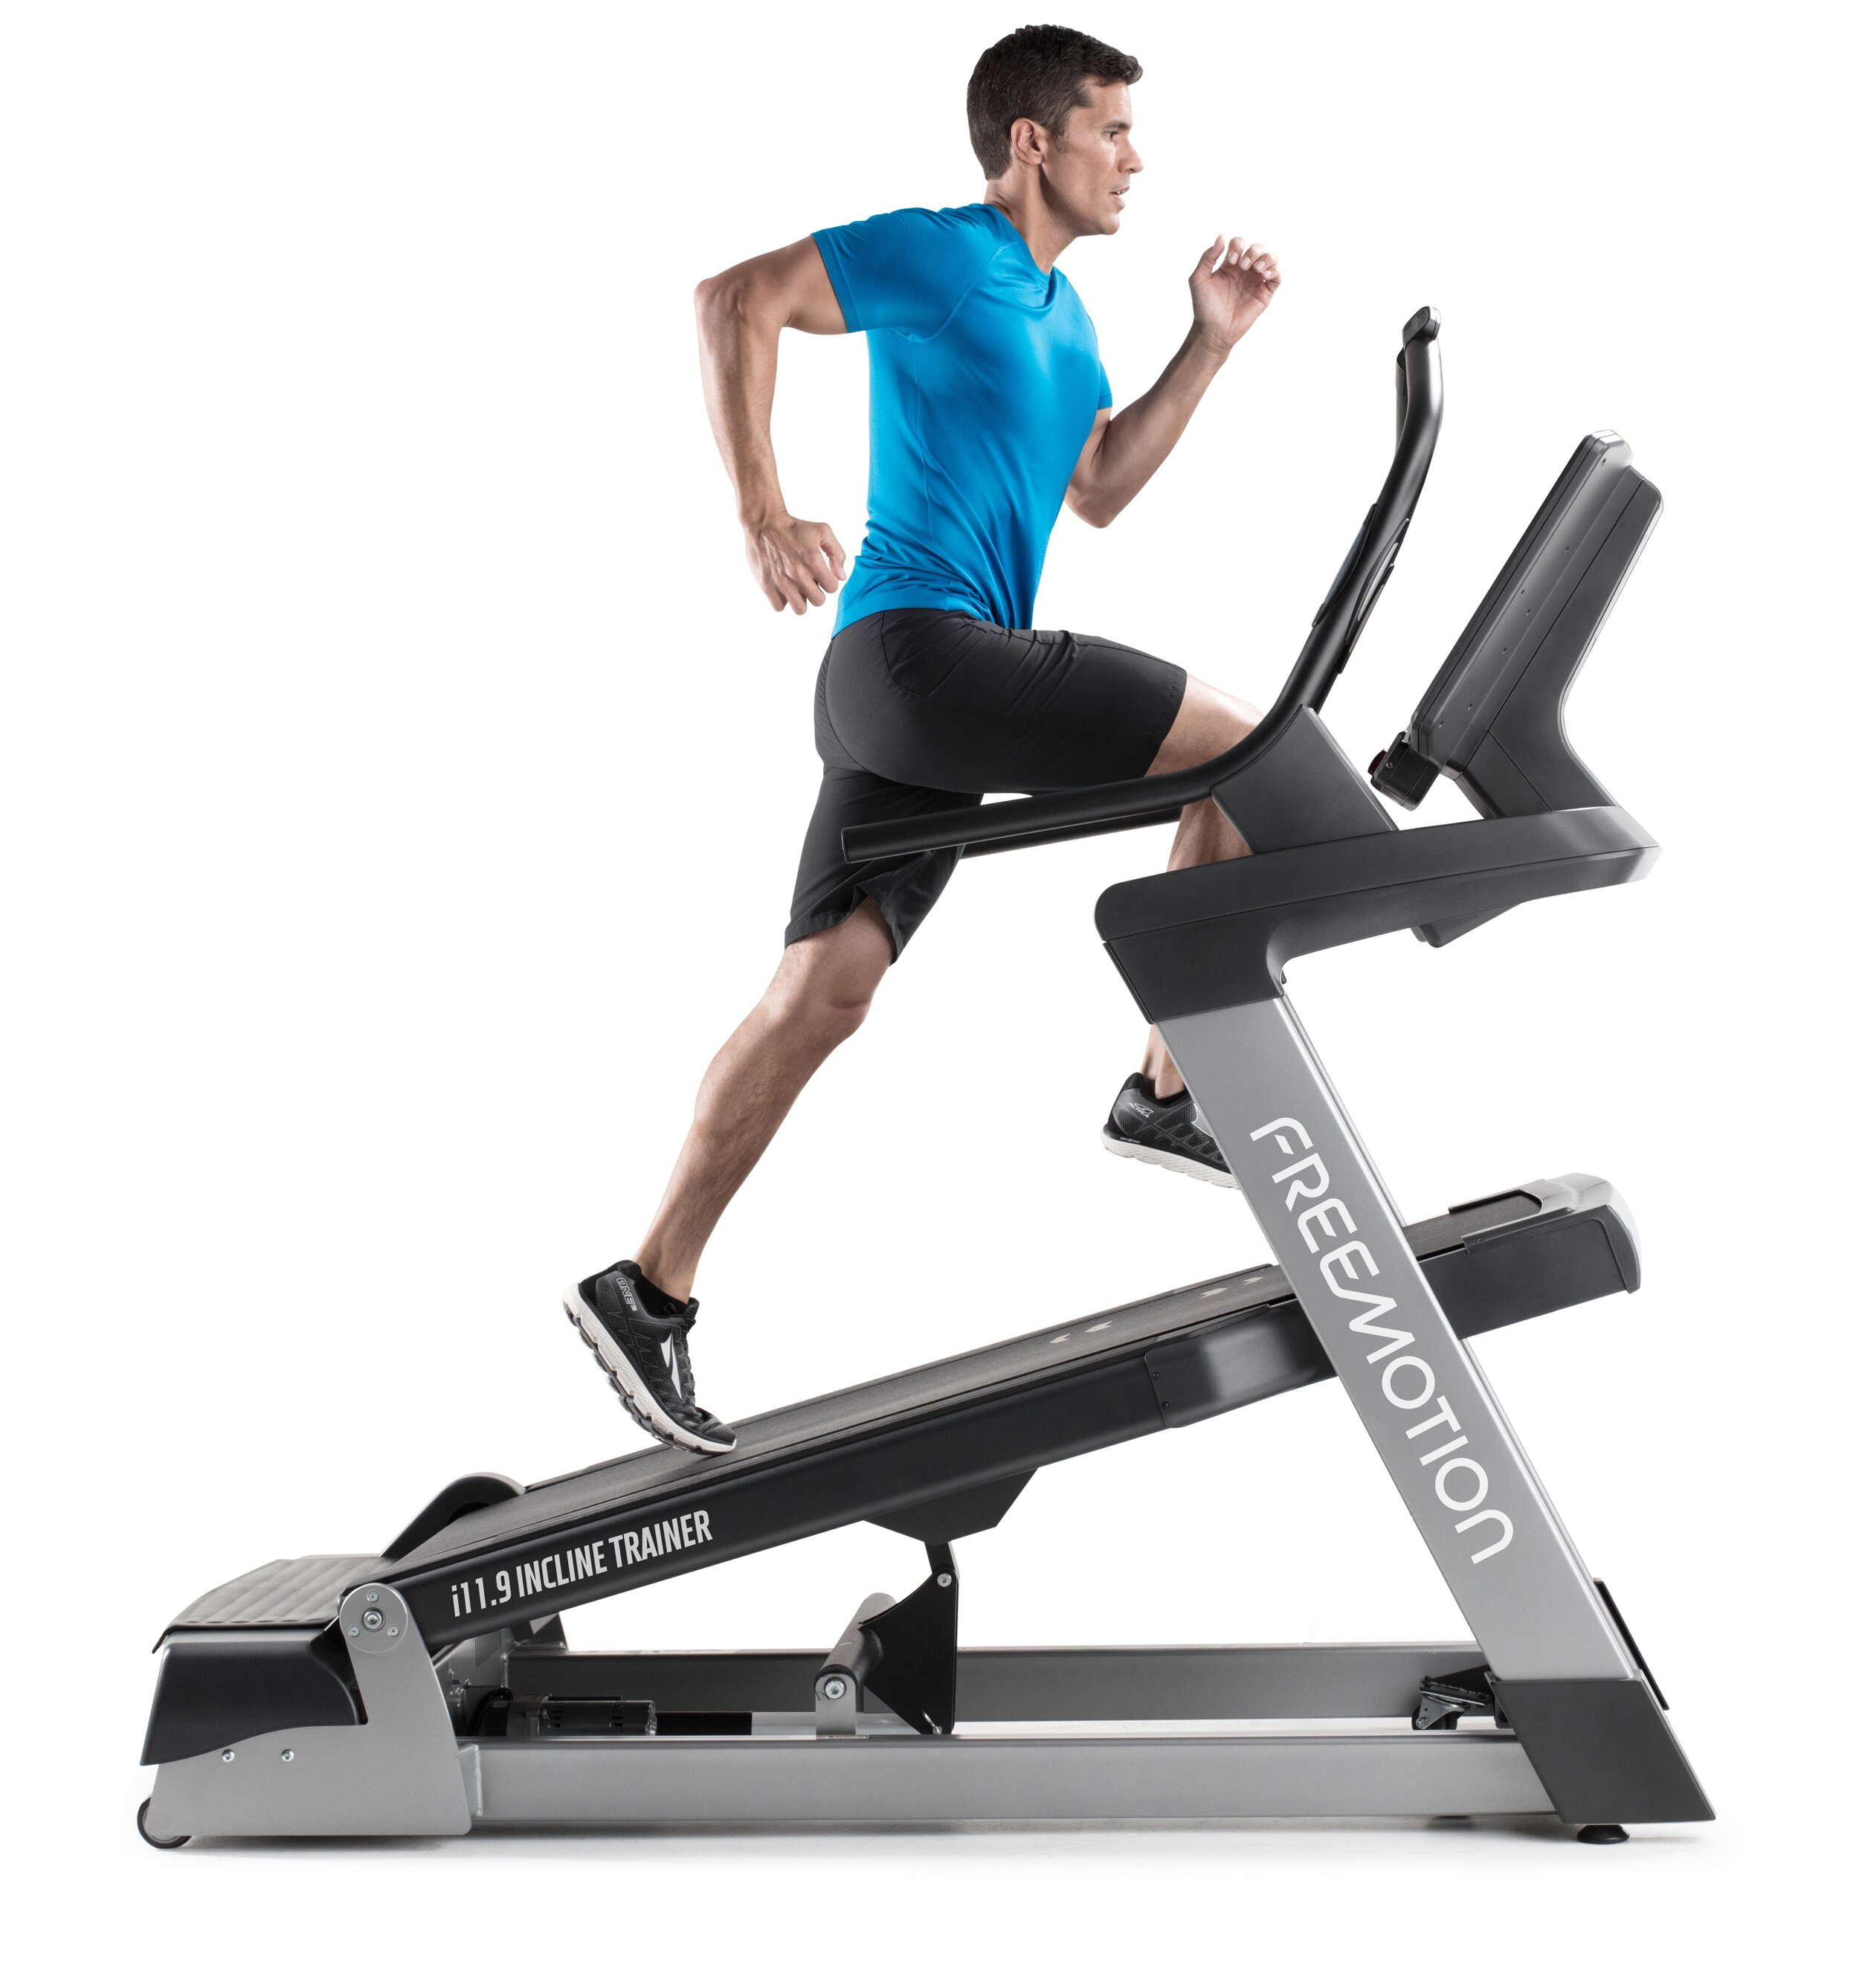 i11.9 incline trainer 20170652.jpg